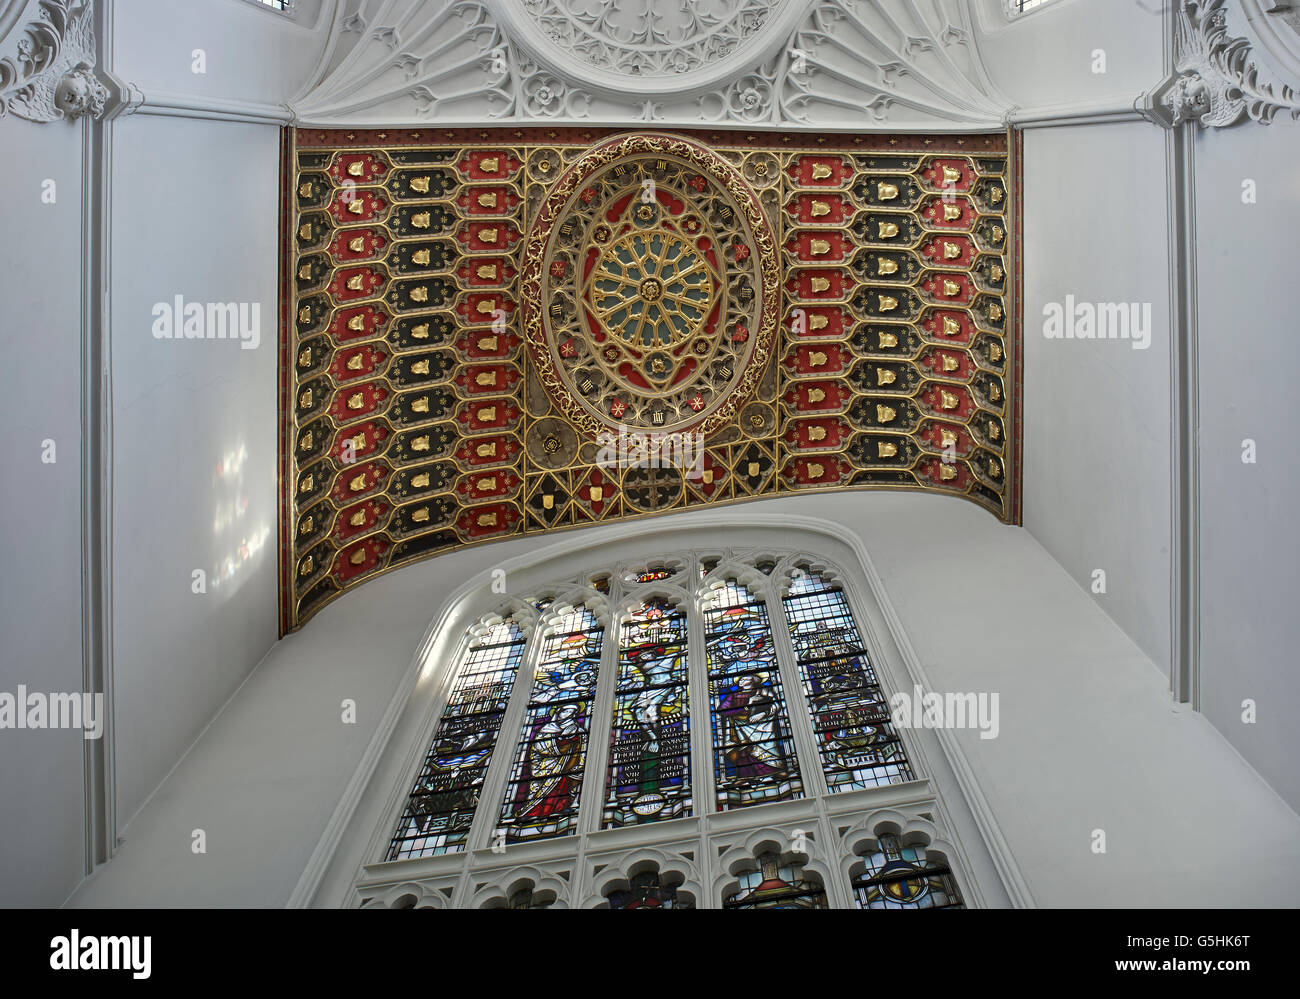 St Mary Aldermary, church in the City of London, Gothic chancel ceiling - Stock Image